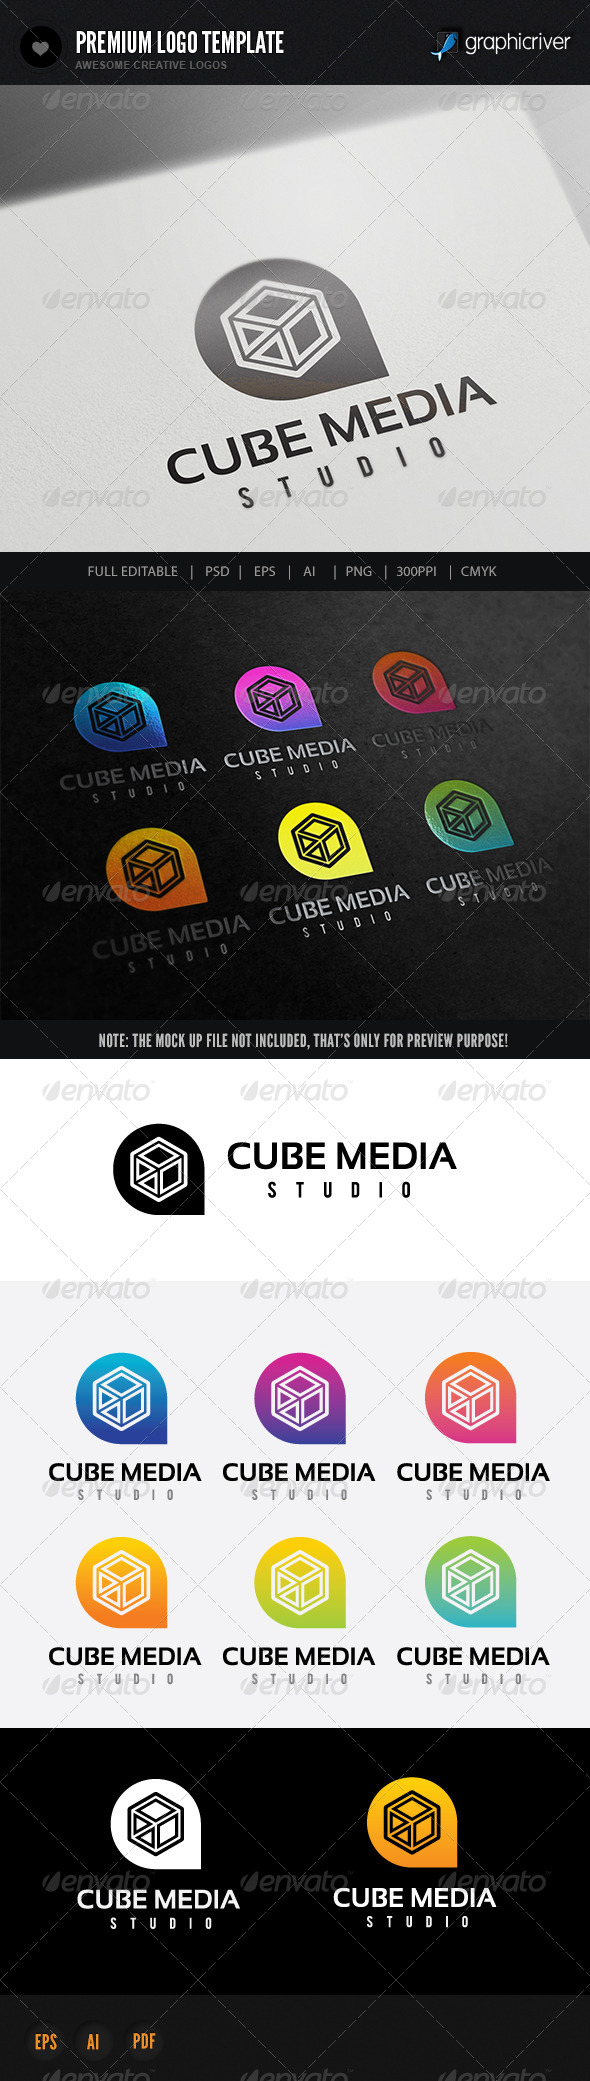 GraphicRiver Cube Media Studio 8676223